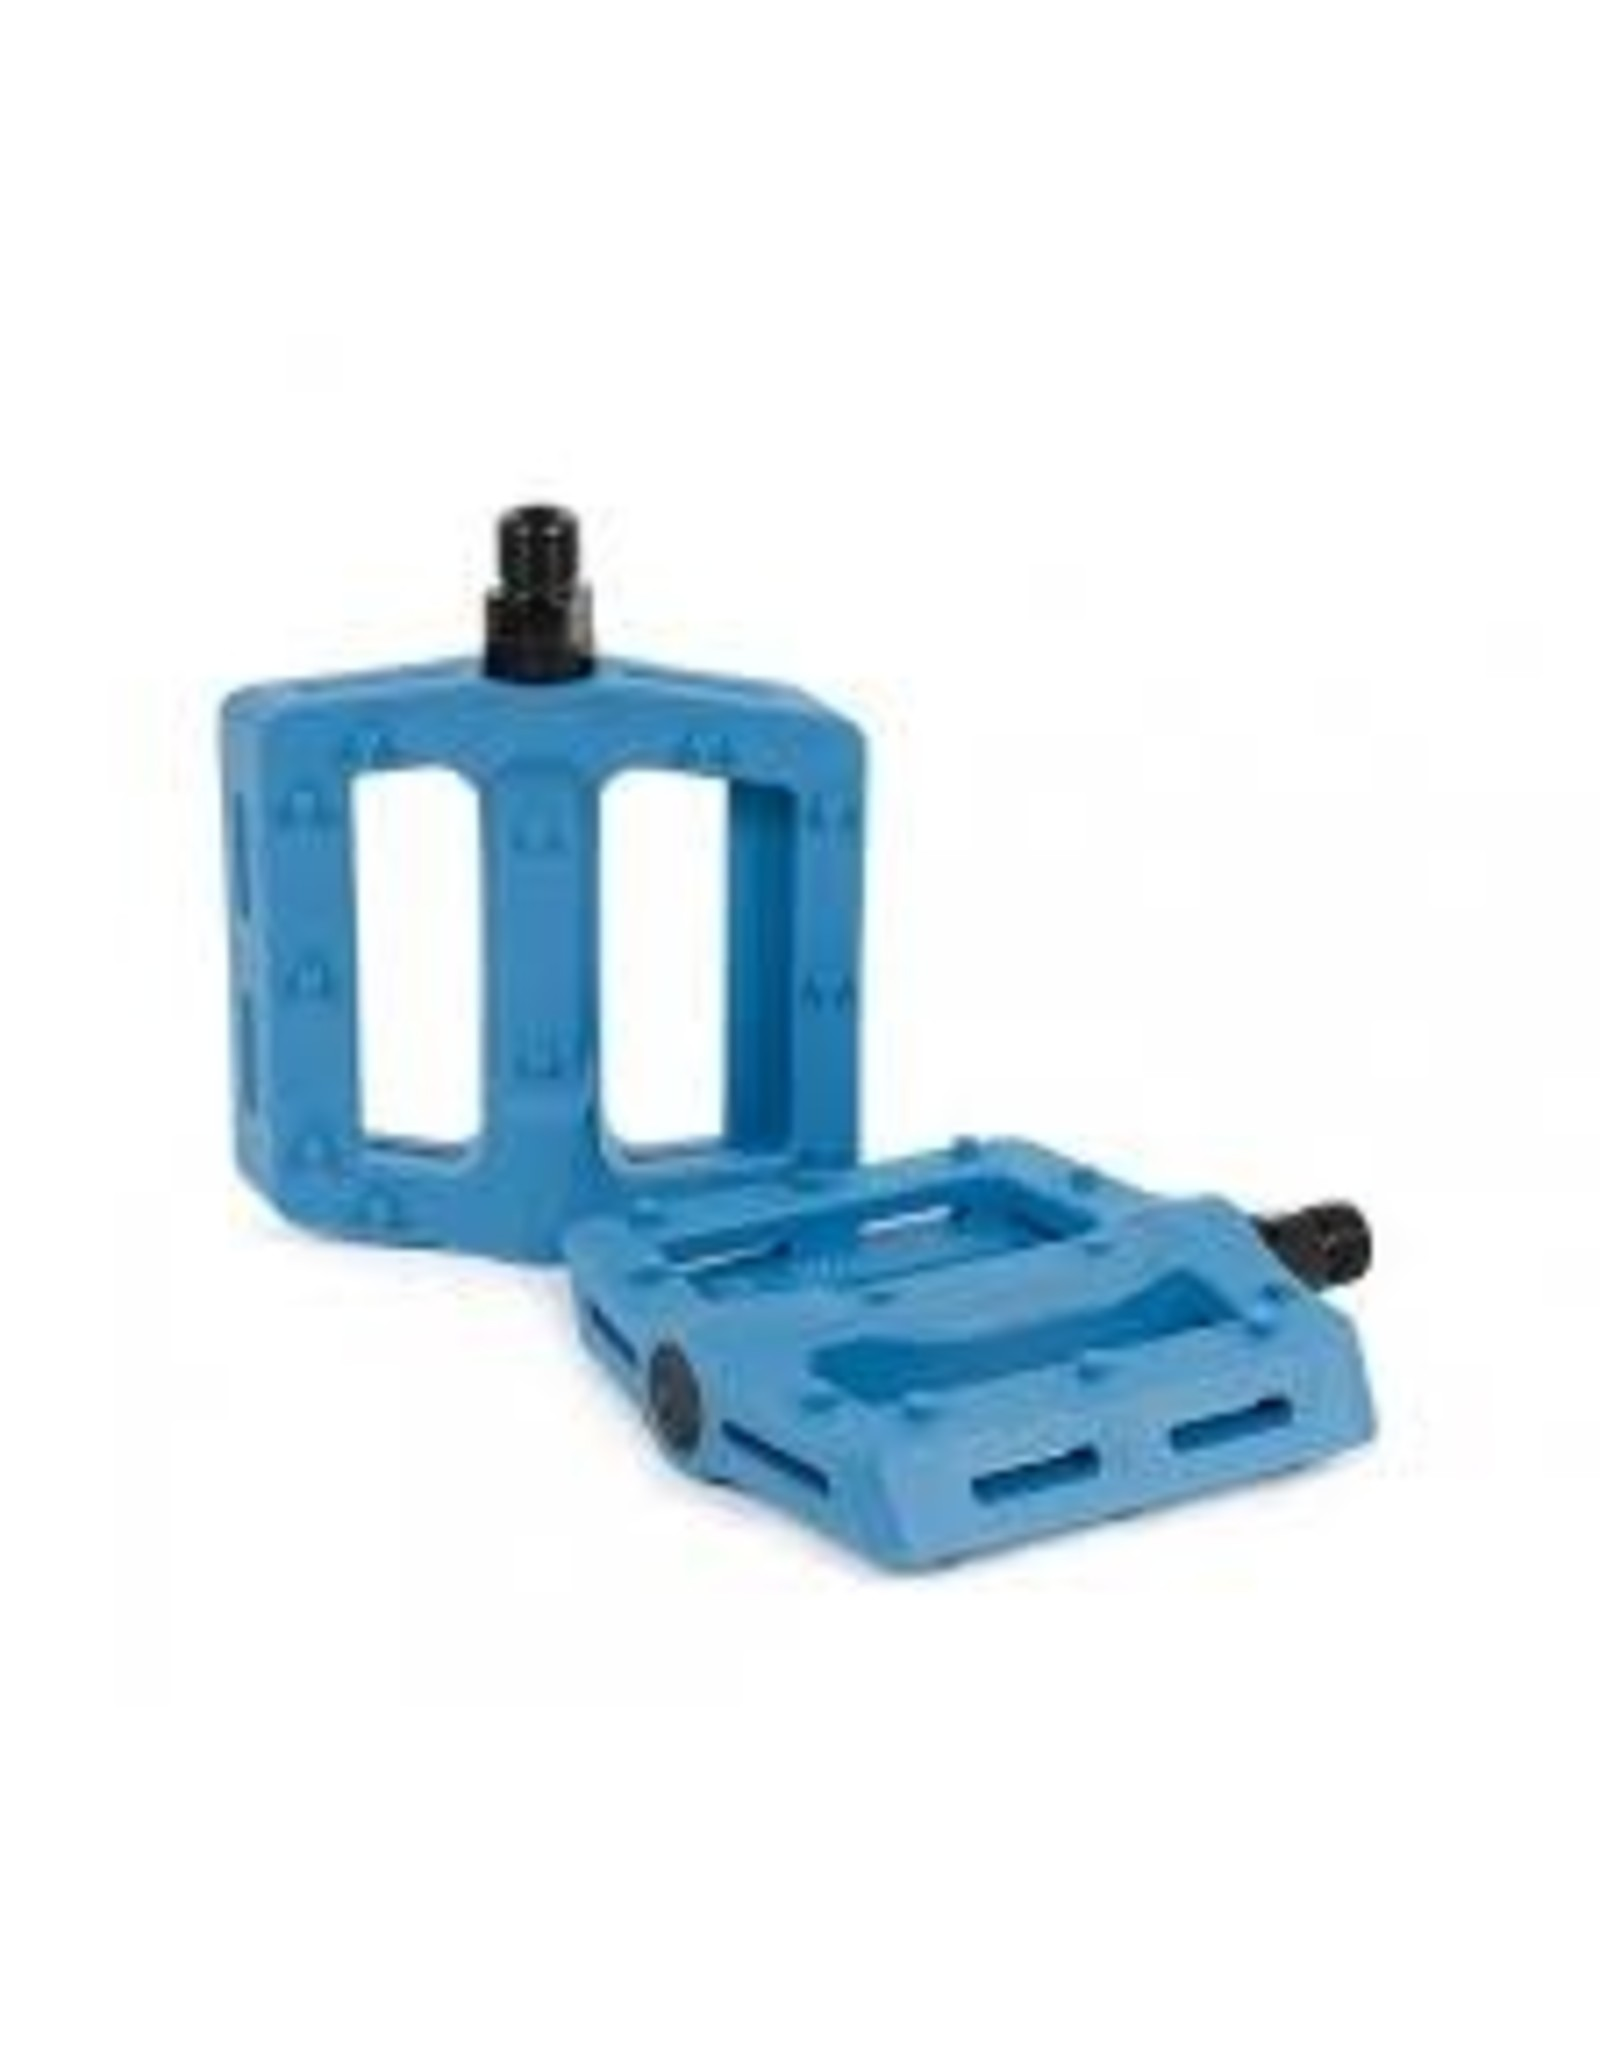 Vp Components Pedal Vp Grind 916 Inch Blue Pair